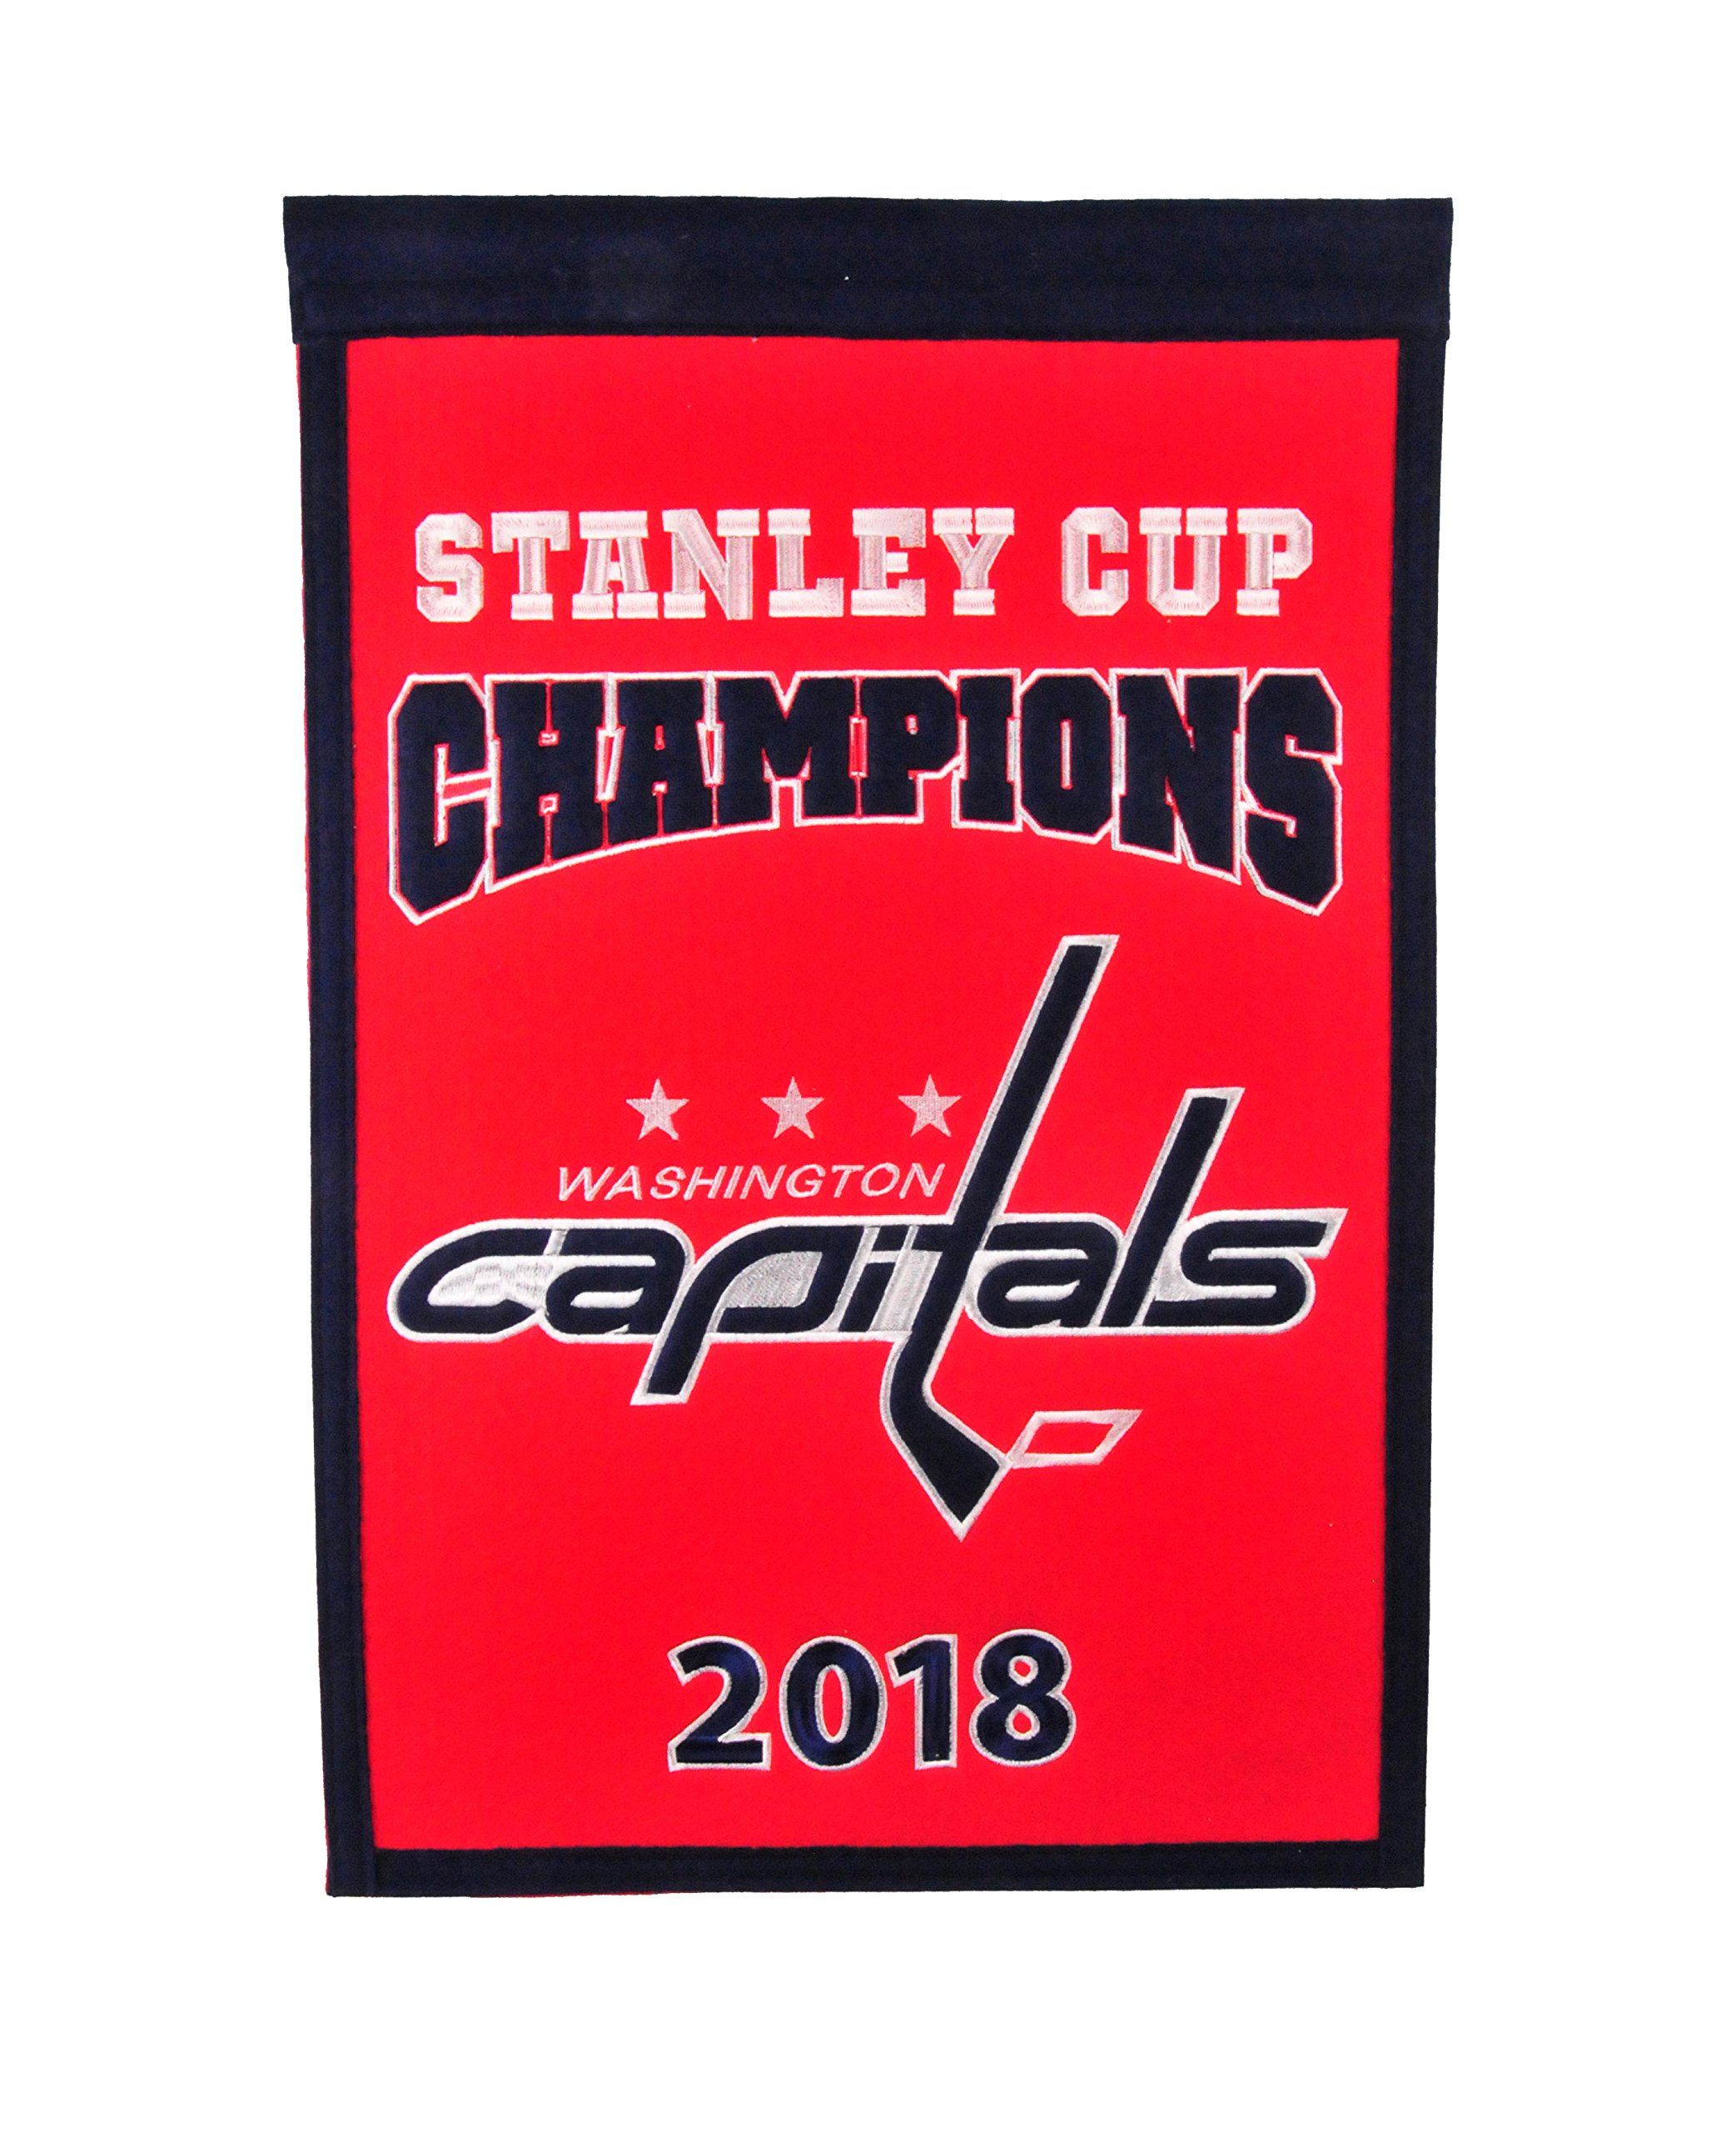 Washington Capitals 2018 NHL Stanley Cup Champions Champs Banner by Winning Streak